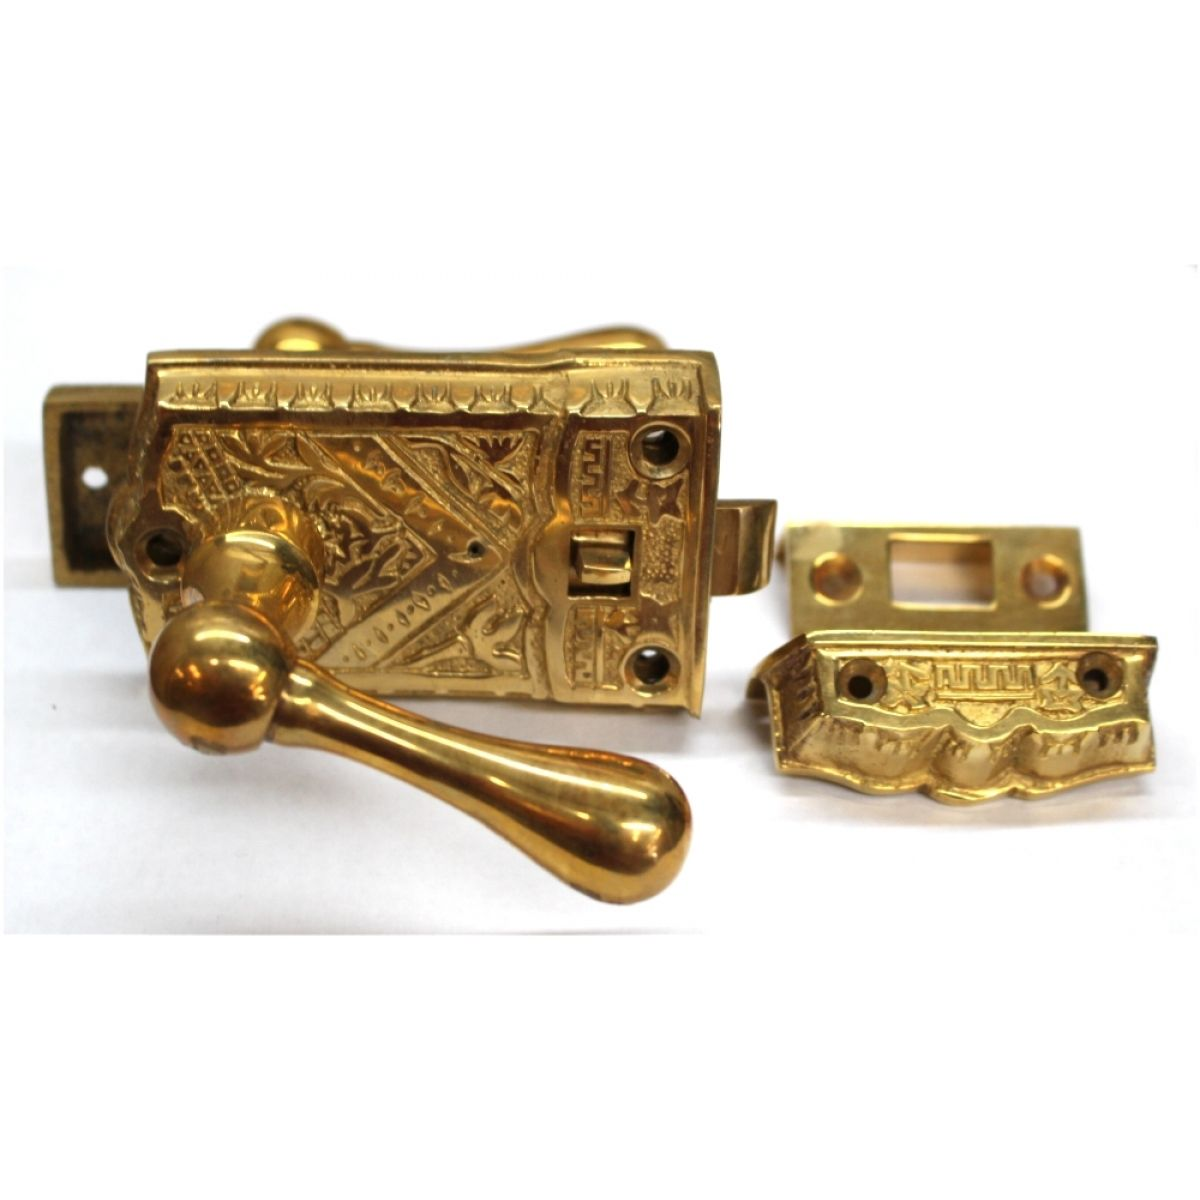 Vintage Brass Eastlake Victorian SCREEN DOOR Latch Lock hardware restoration - Vintage Brass Eastlake Victorian SCREEN DOOR Latch Lock Hardware